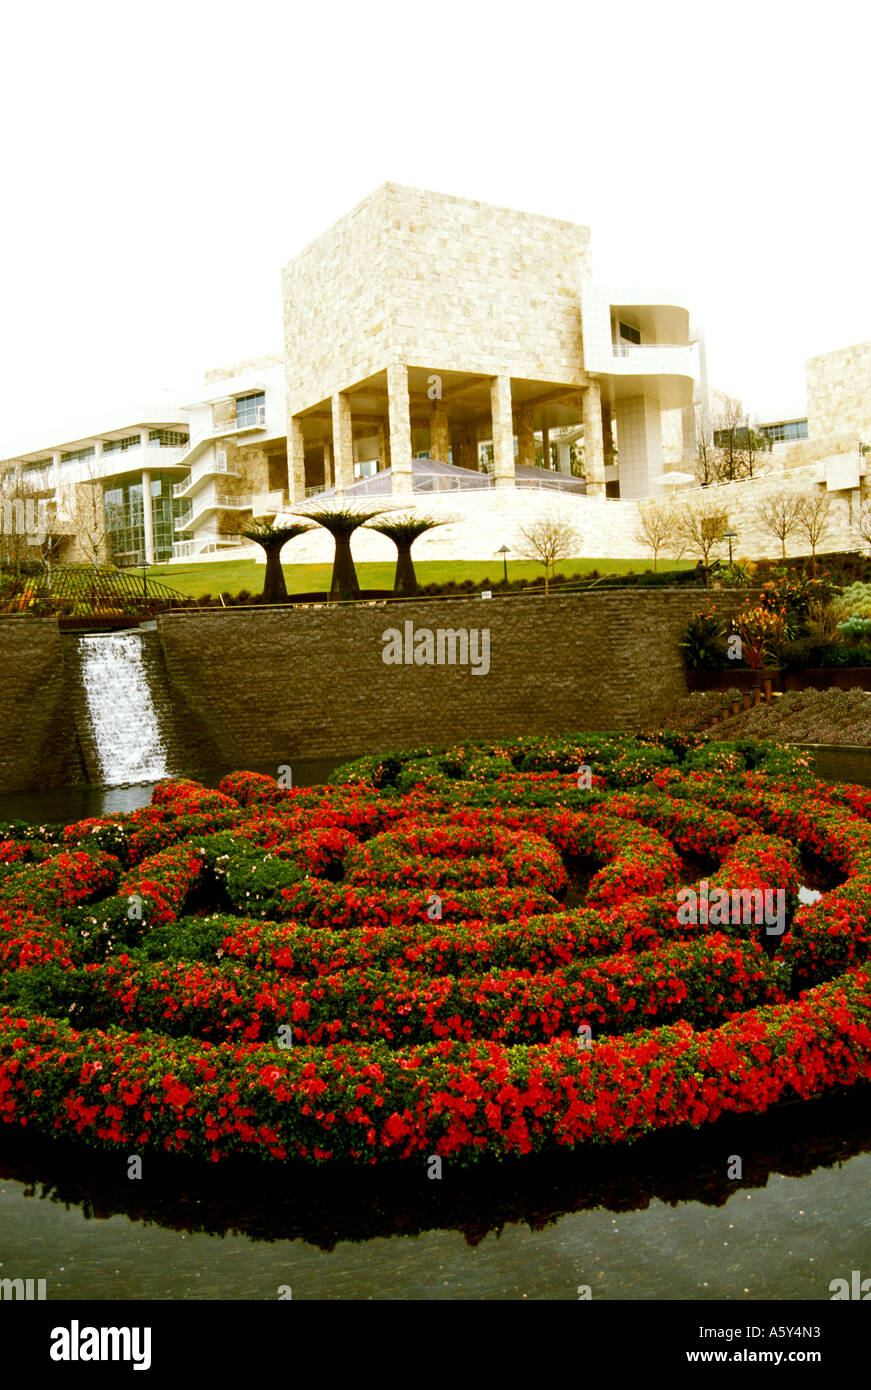 California Los Angeles Getty Museum gardens - Stock Image